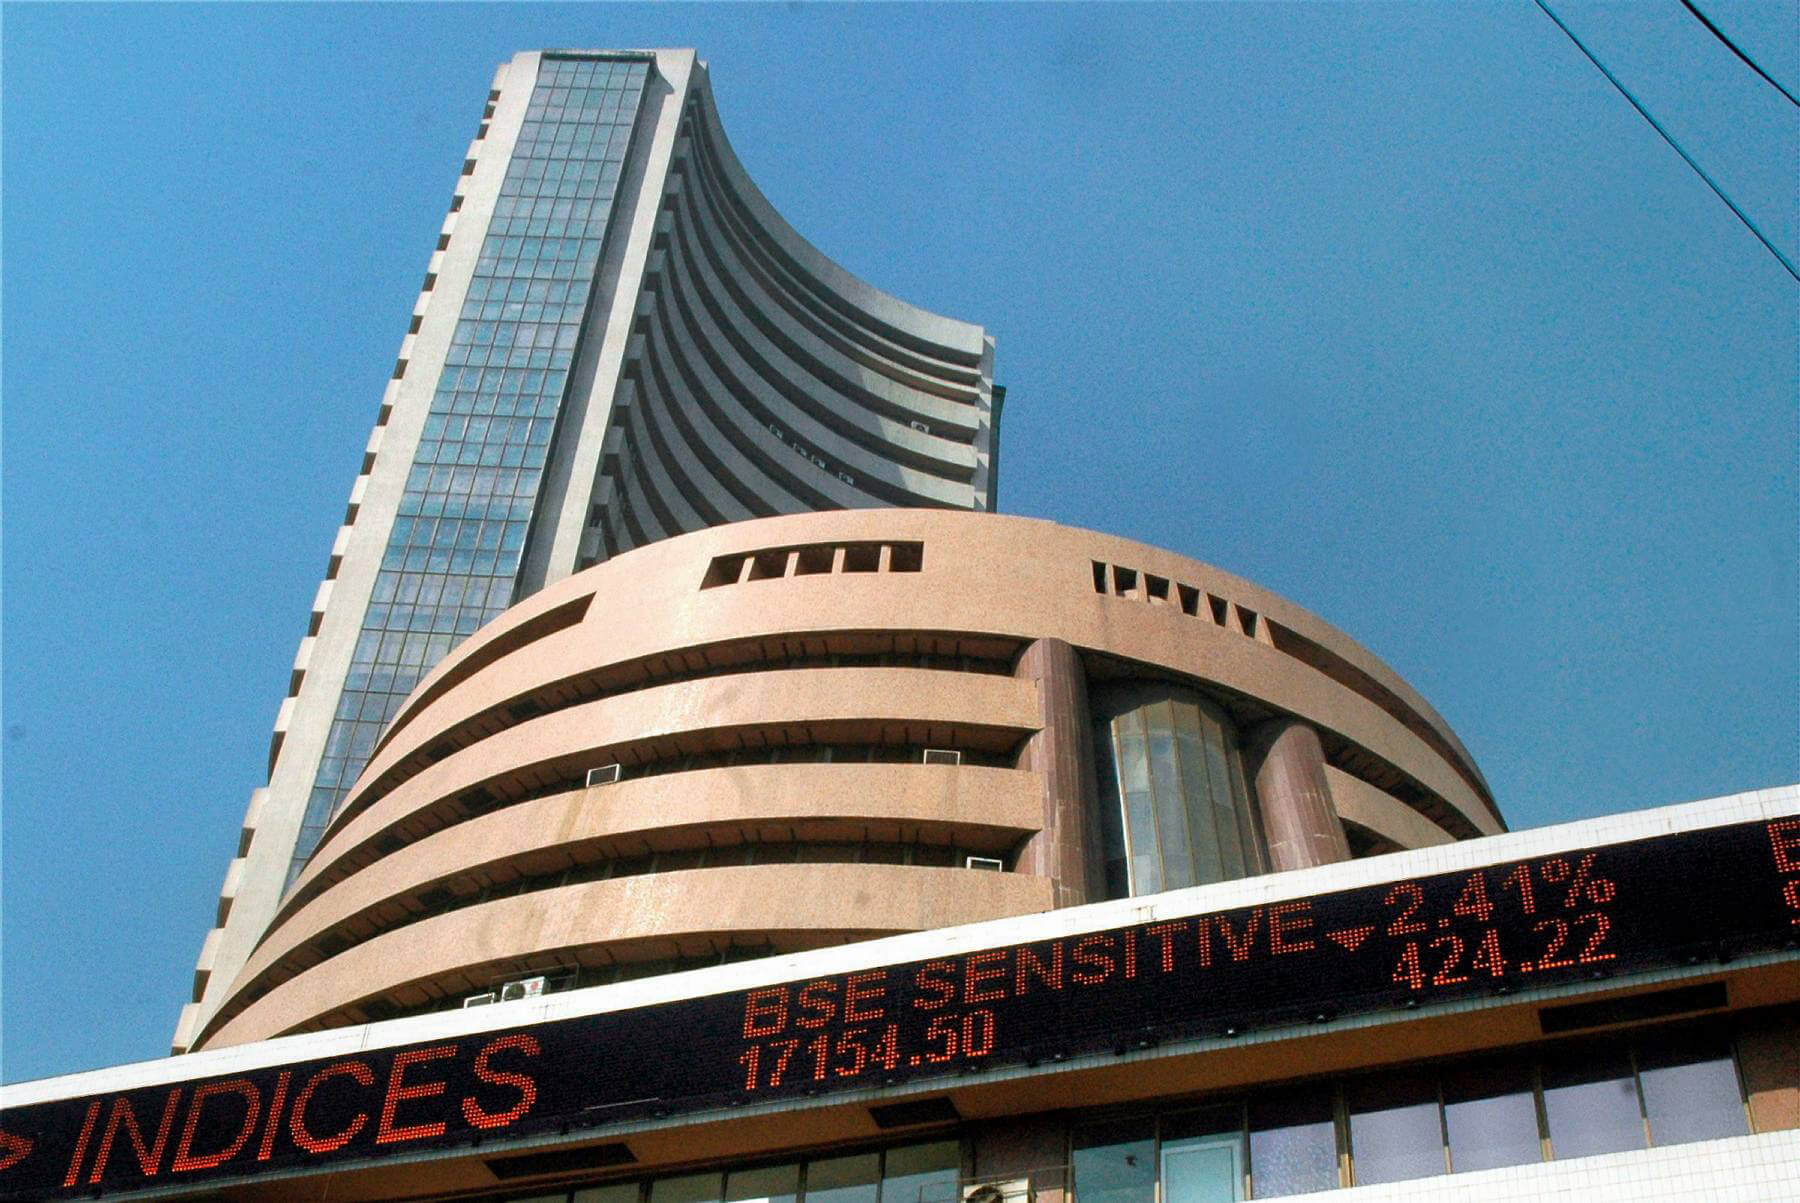 Global Cues, Derivatives Expiry to Chart Stock Market's Course